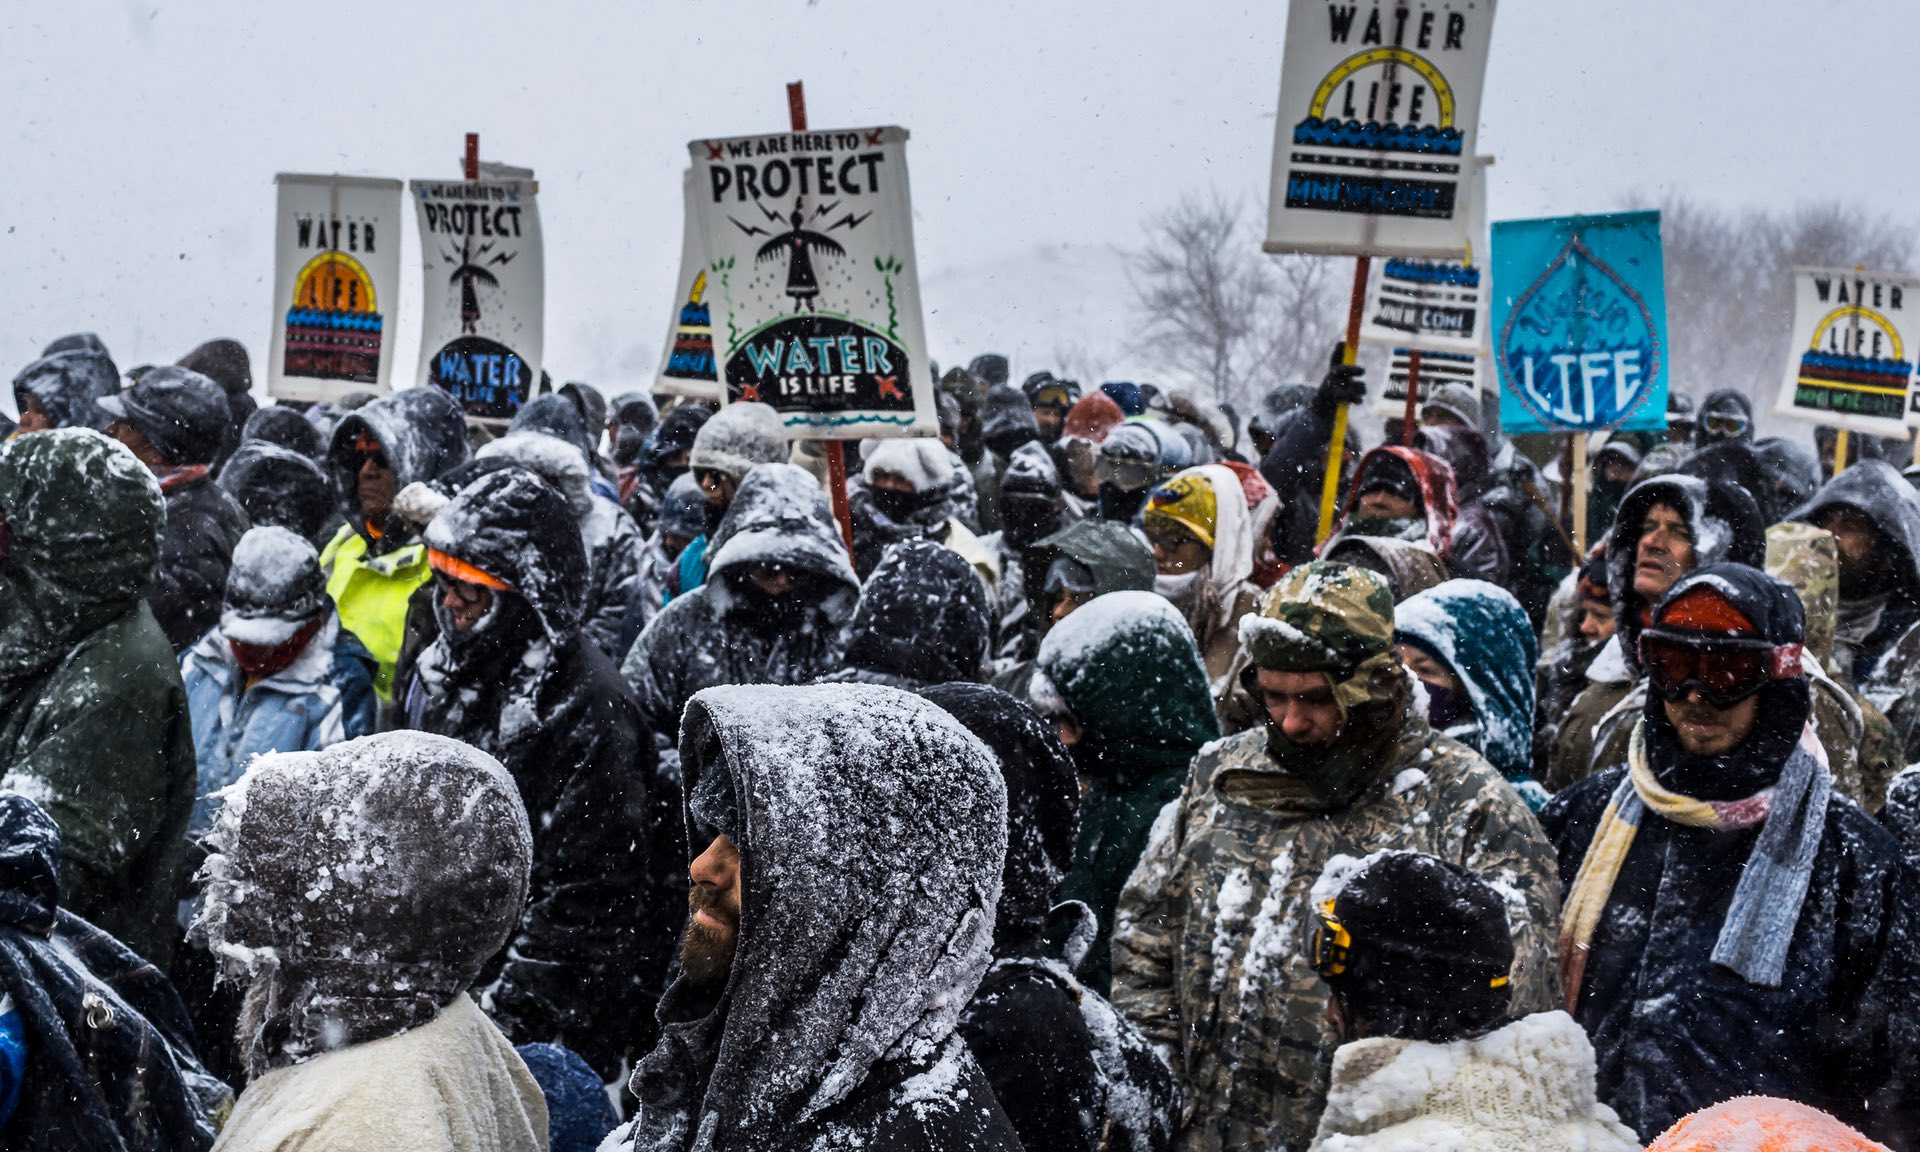 A permit has been granted for the oil pipeline to cross the Missouri river, following Donald Trump's executive order. Photograph: UPI / Barcroft Images